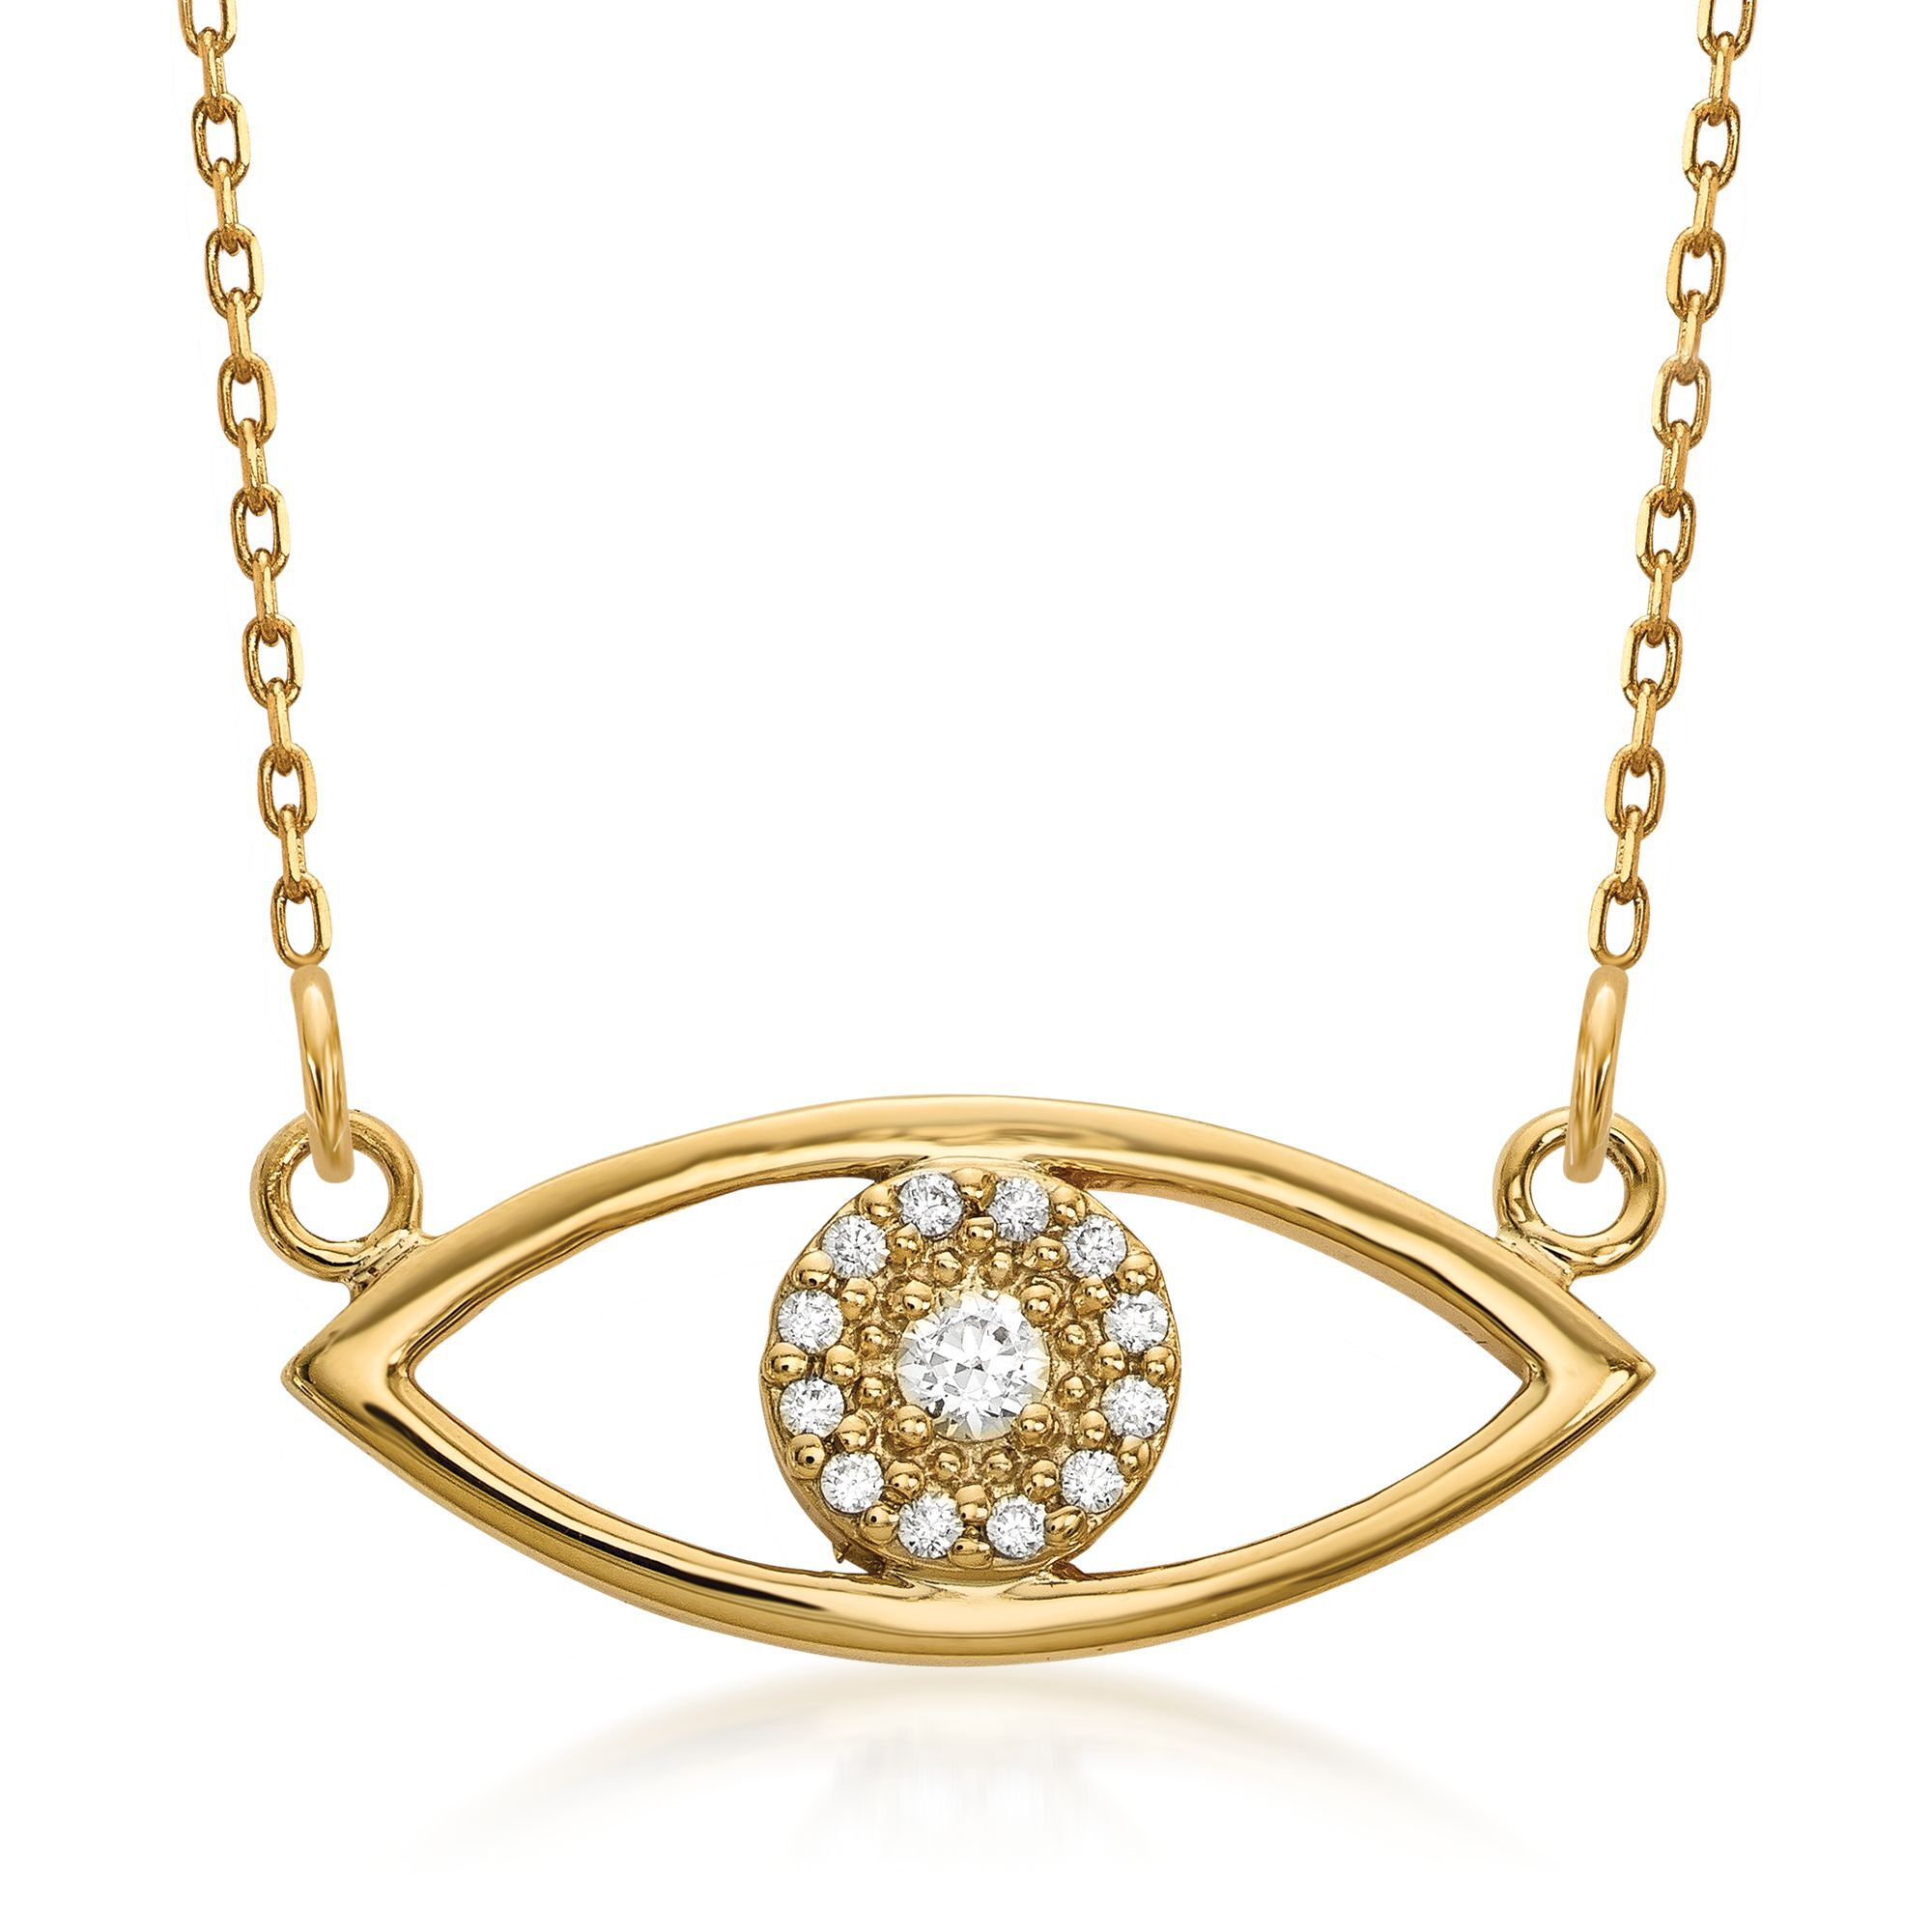 GOLD NECKLACE 14KT GOLD ADJUSTABLE CUT OUT EVIL EYE NECKLACE